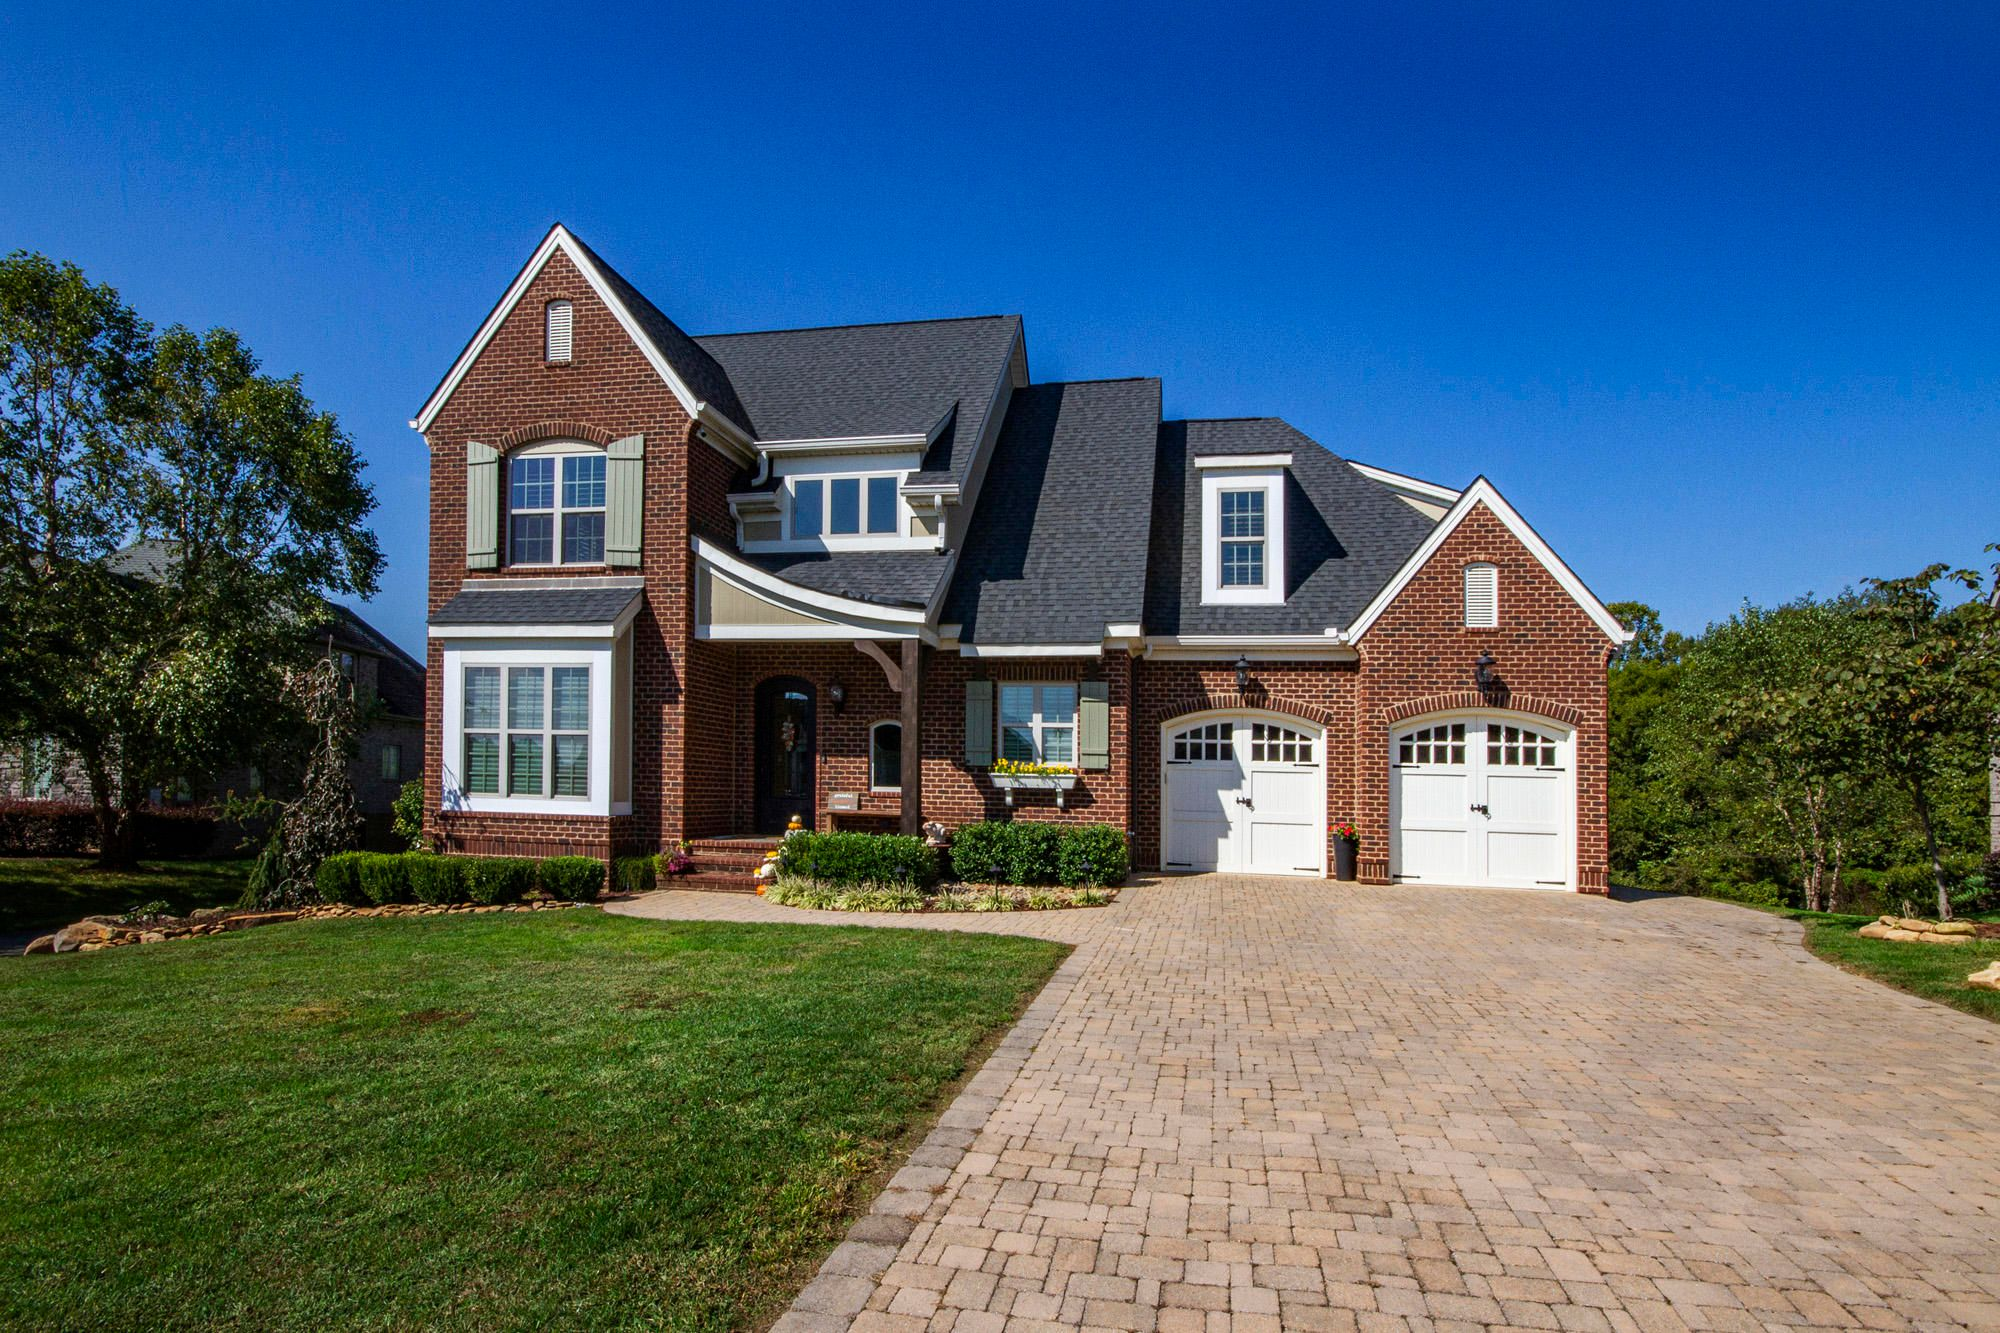 Great curb appeal!